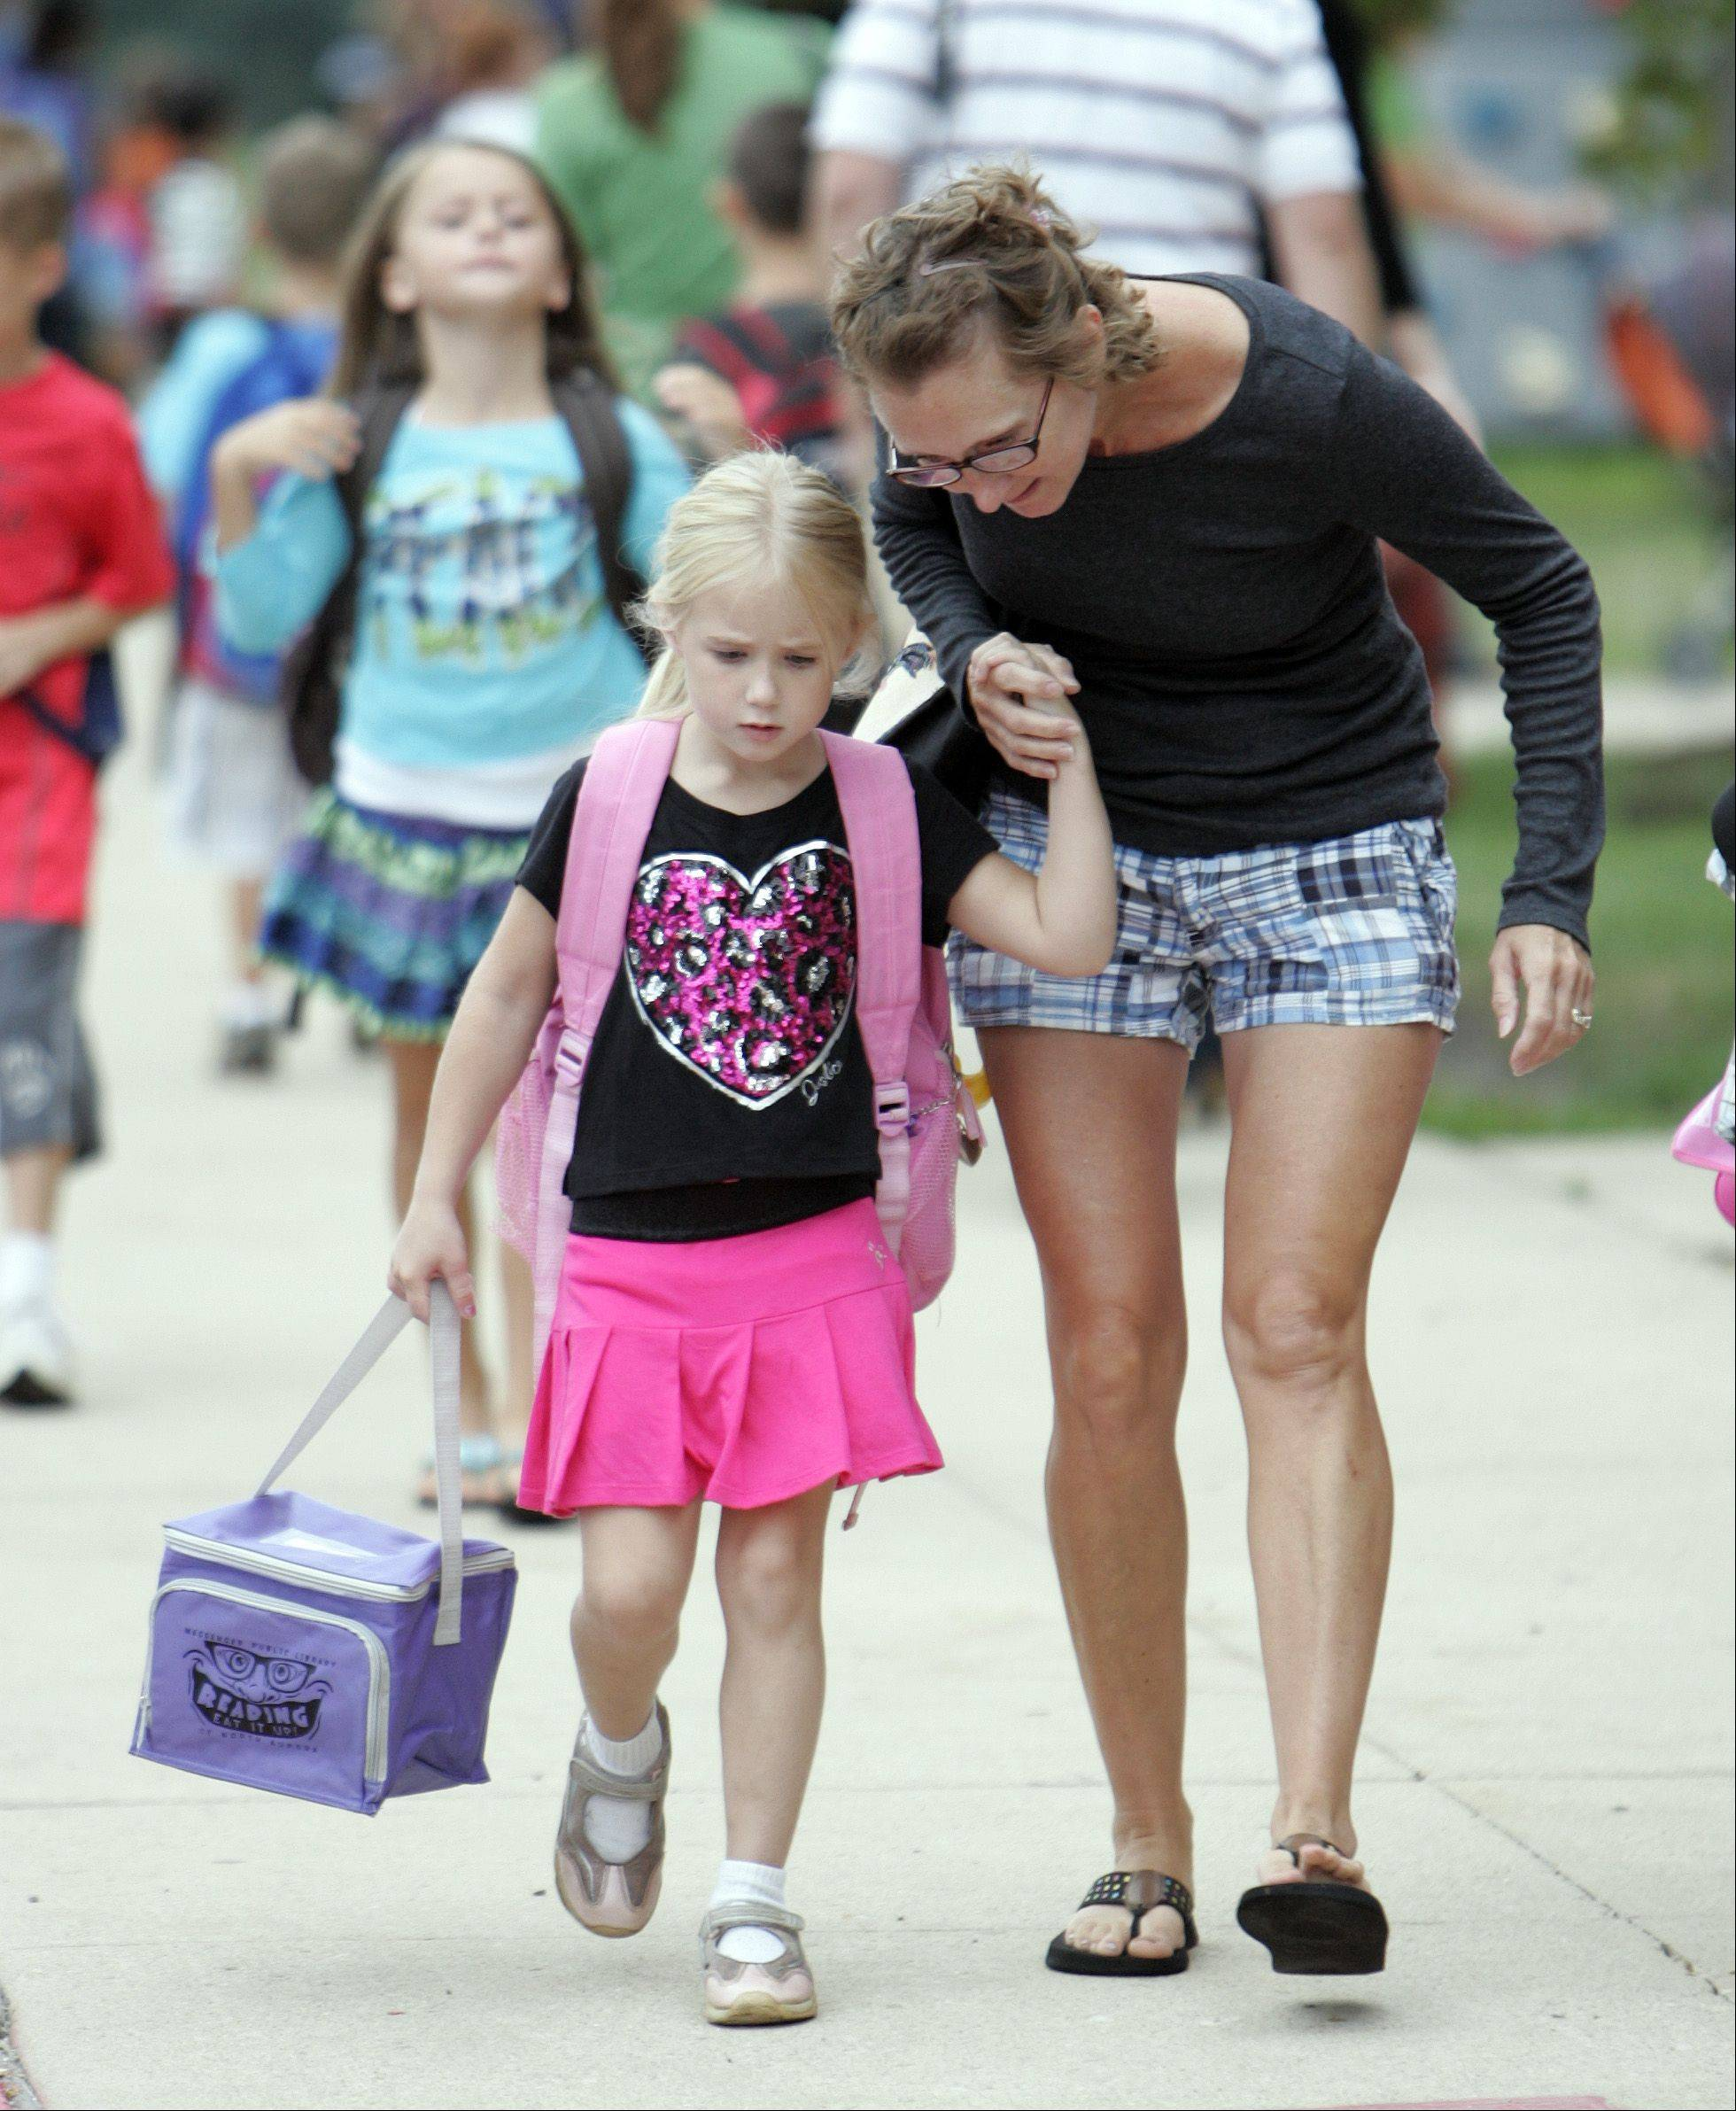 Debbie Whitlock of North Aurora, walks her daughter Abby, 5, to kindergarten during the first day of school at Fearn Elementary School in North Aurora Wednesday.